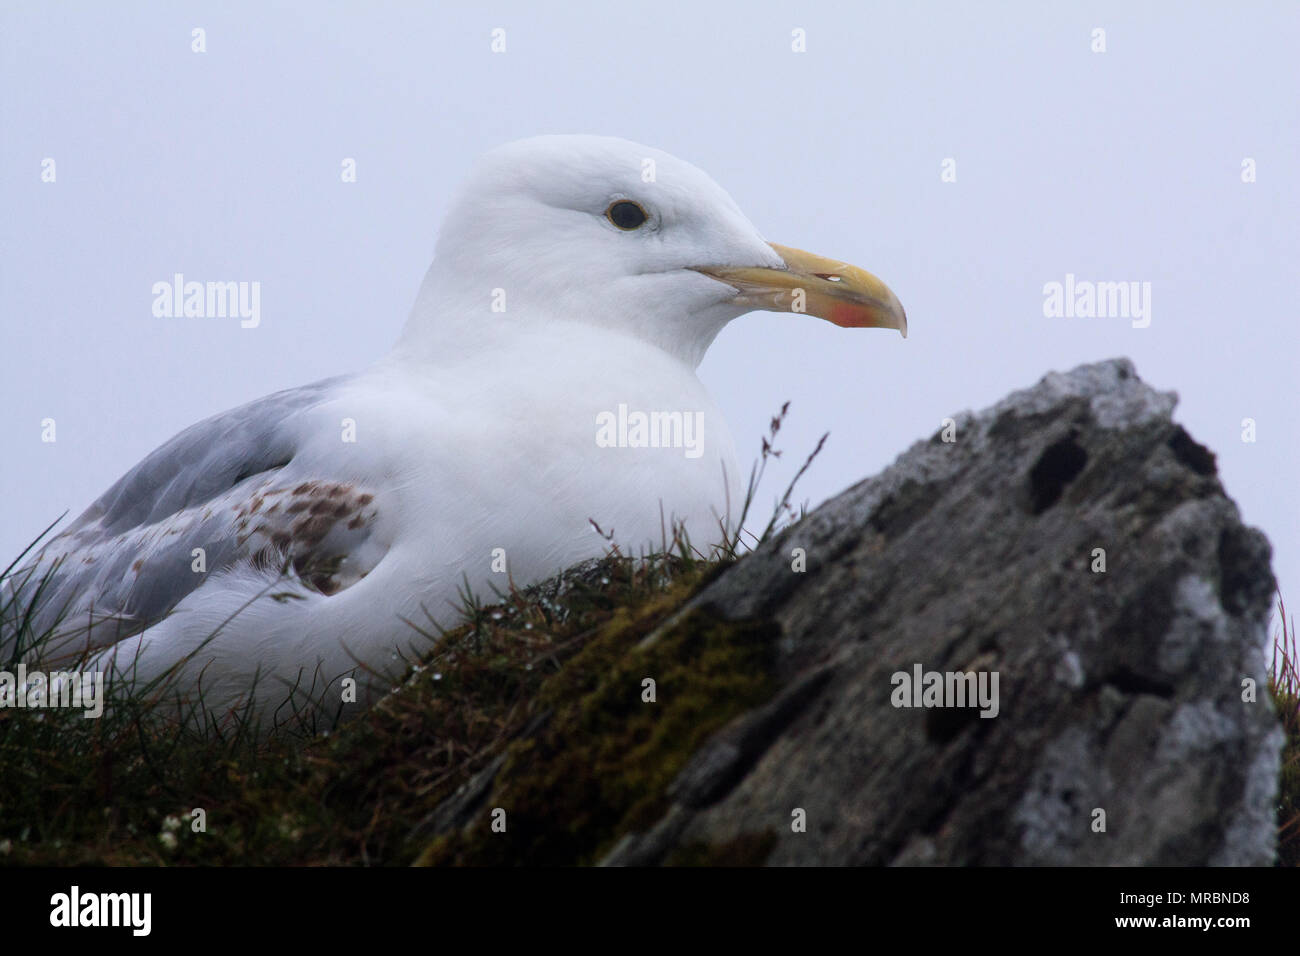 Close-up of an european herring gull (Larus argentatus) on top of Snowdon mountain, Snowdonia National Park, Wales. - Stock Image